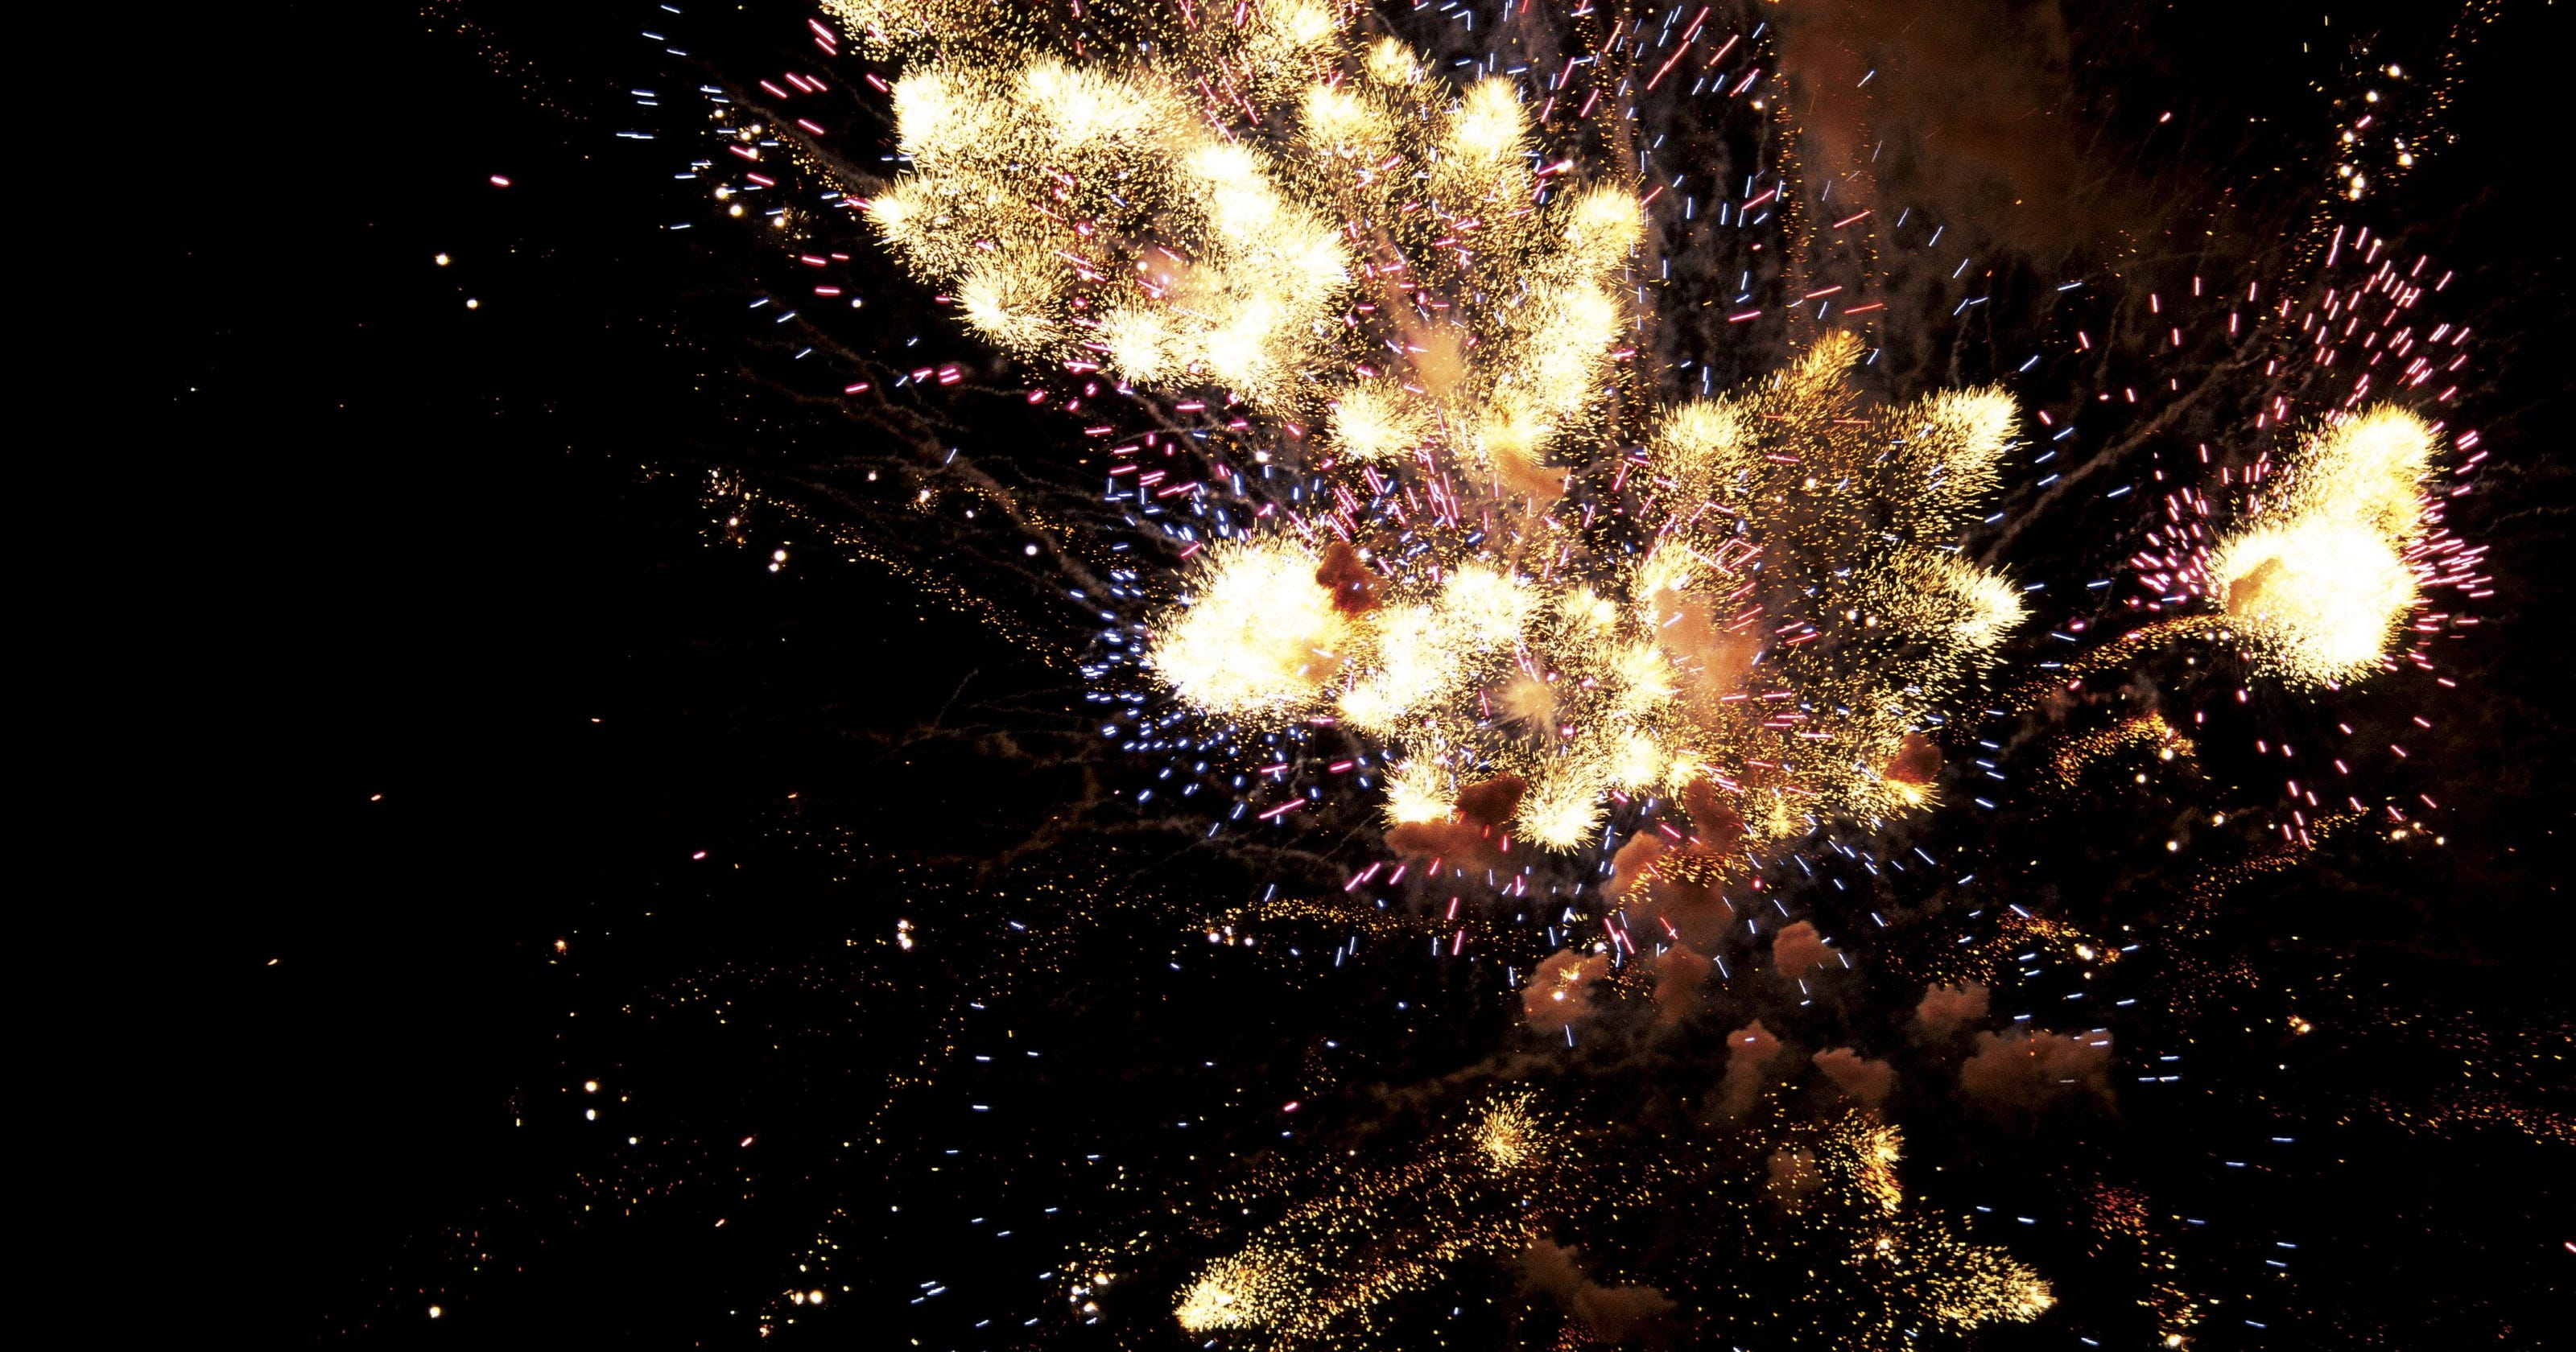 MPD: Don't even think about launching fireworks tonight